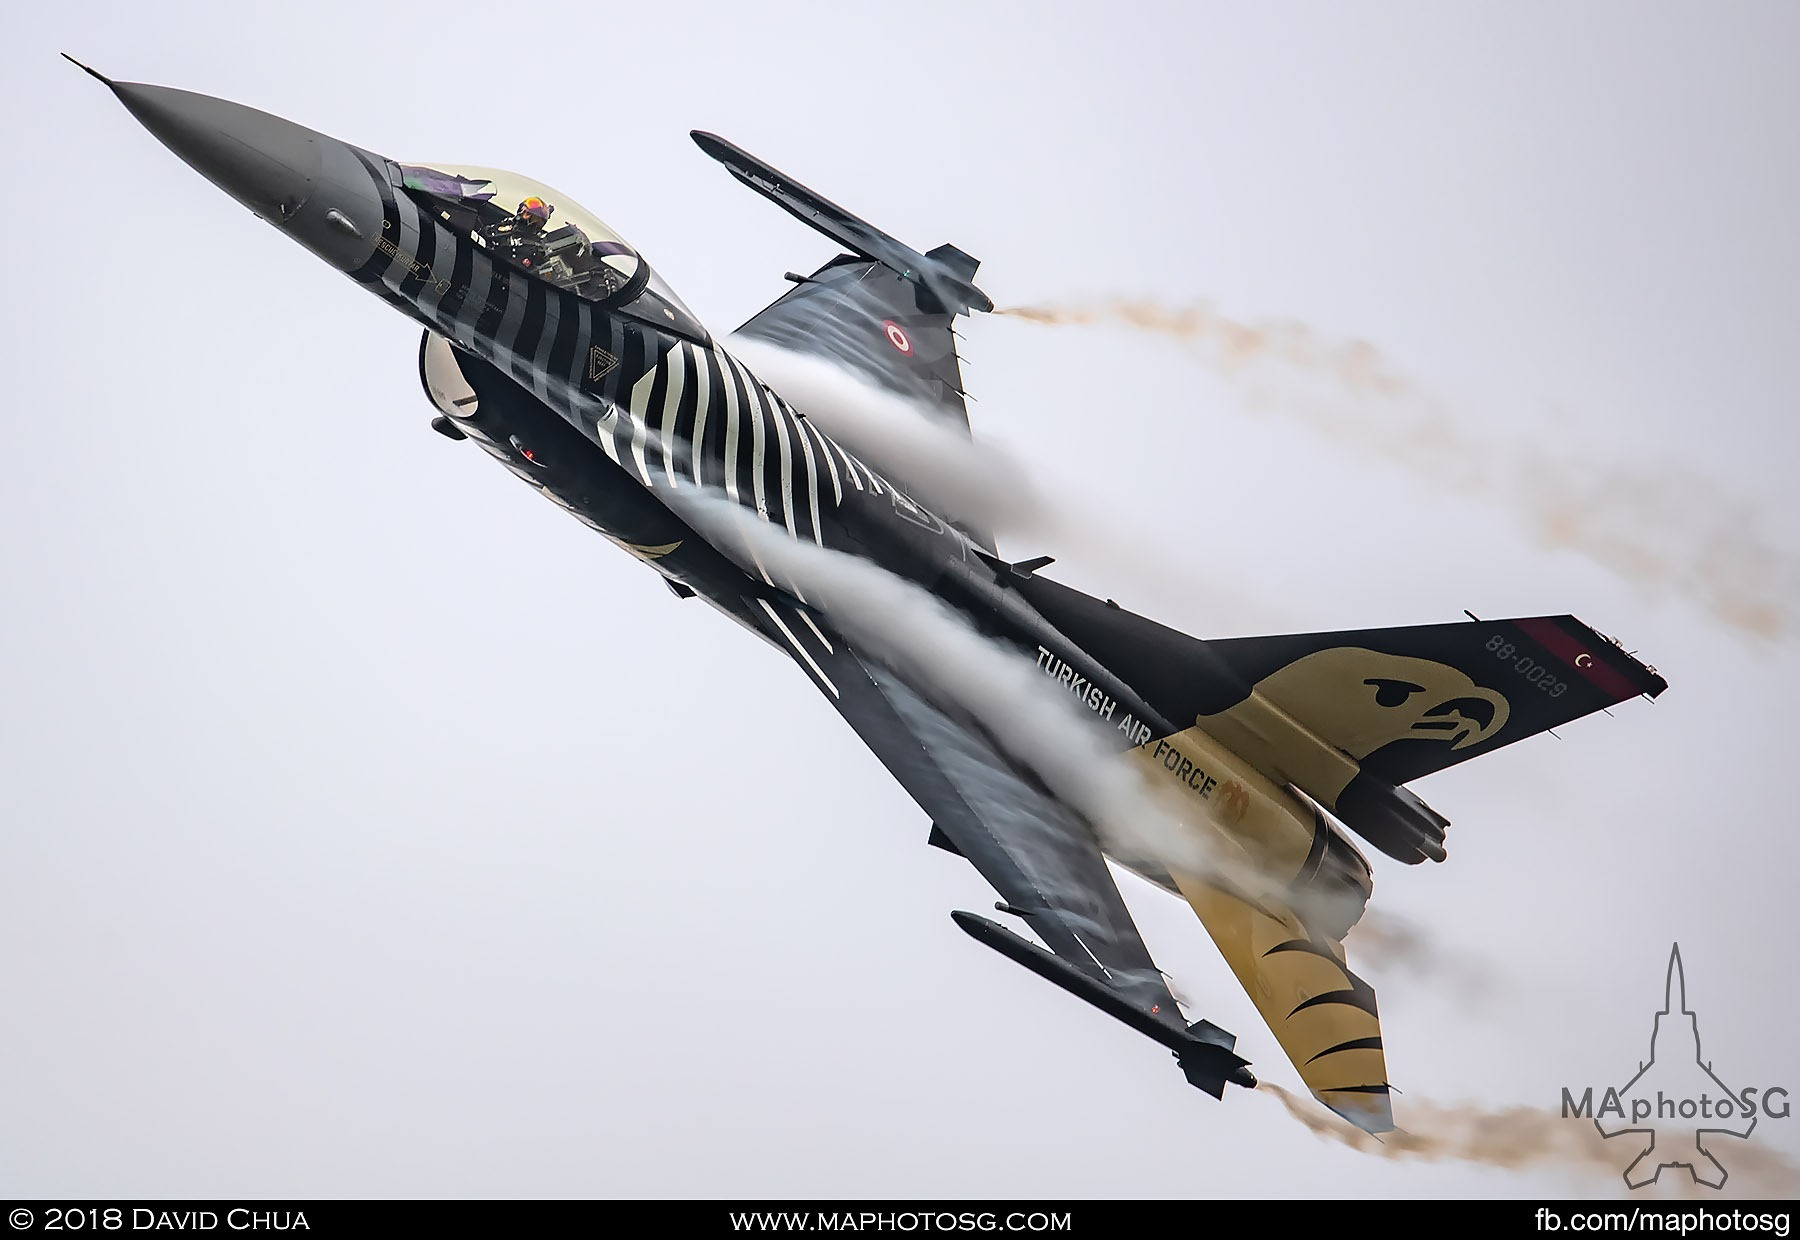 42. F-16C Block 40 Fighting Falcon of the Turkish Air Force Solo Turk display team